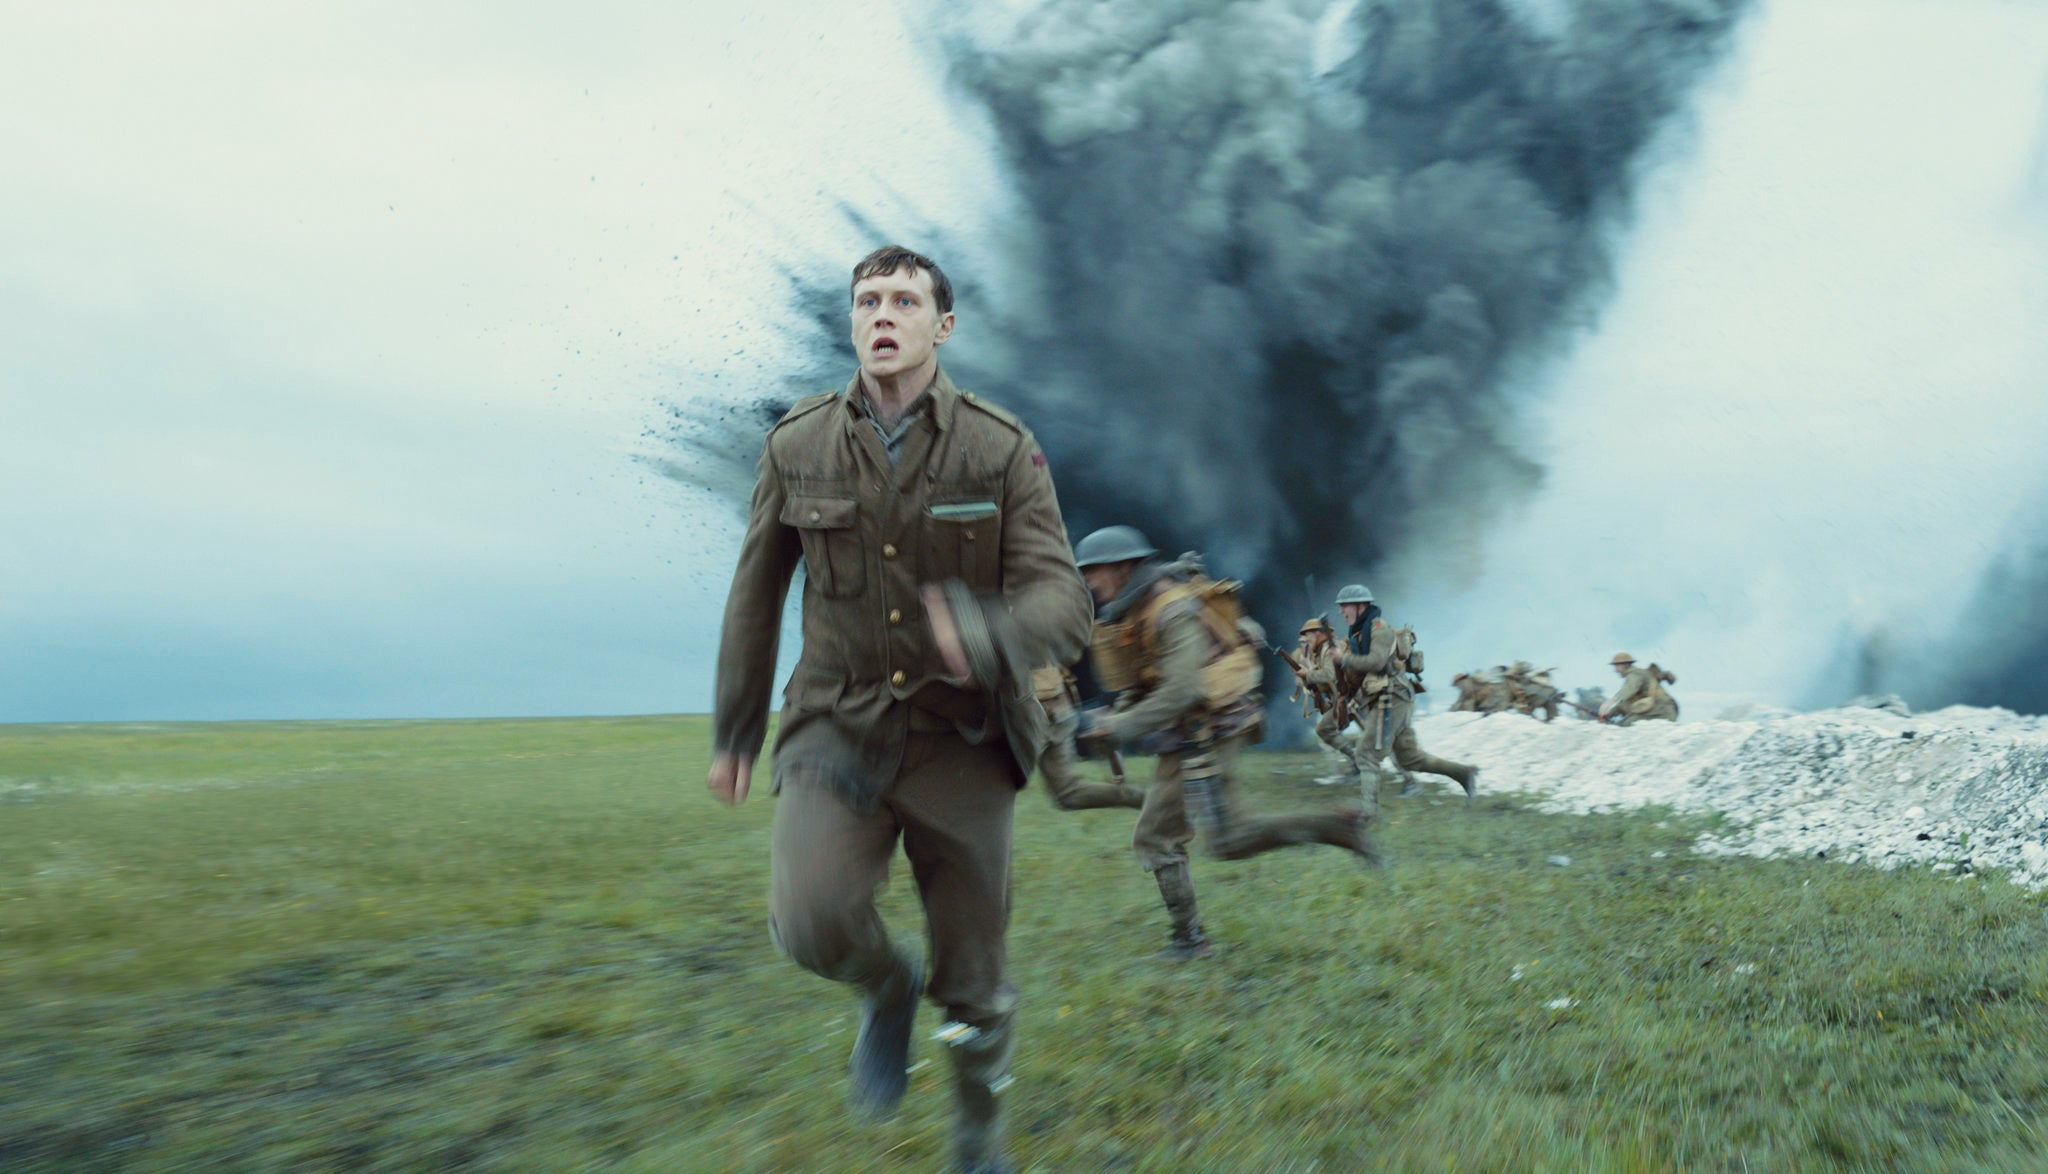 1917: the film of the year? Not by a long shot